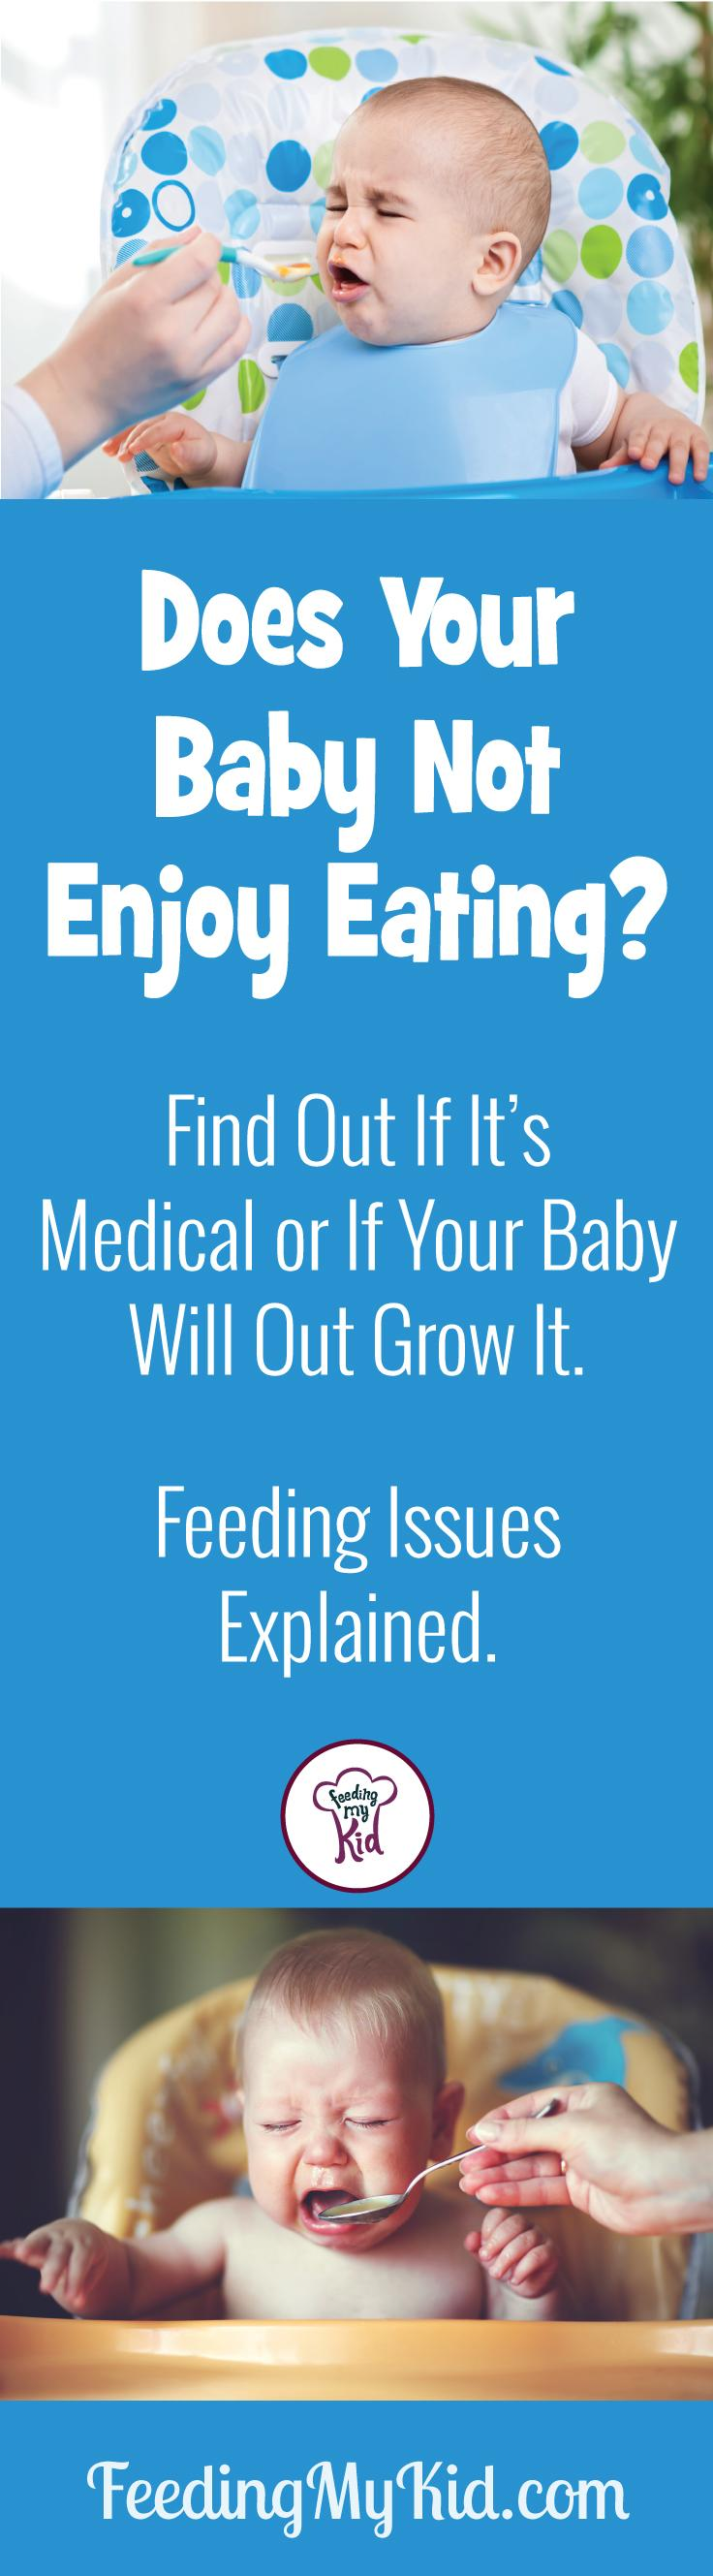 Does Your Baby Not Enjoy Eating? Is it Medical?